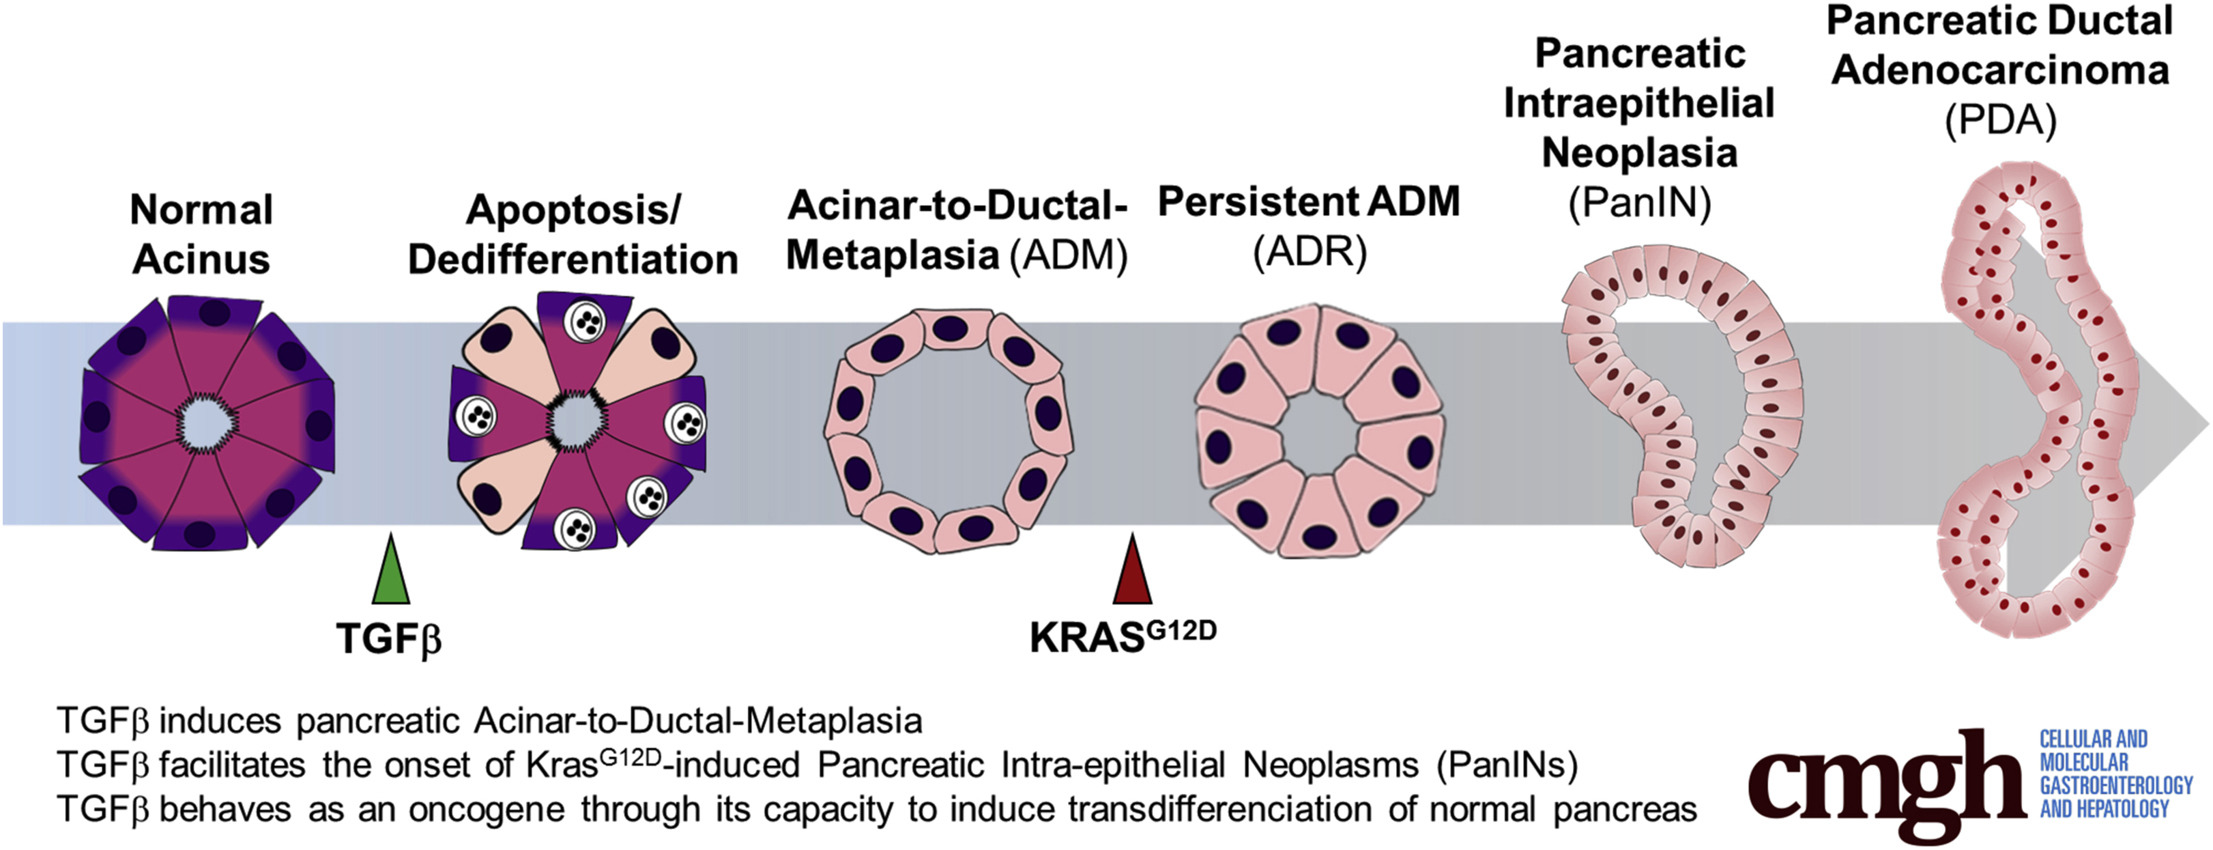 Acinar To Ductal Metaplasia Induced By Transforming Growth